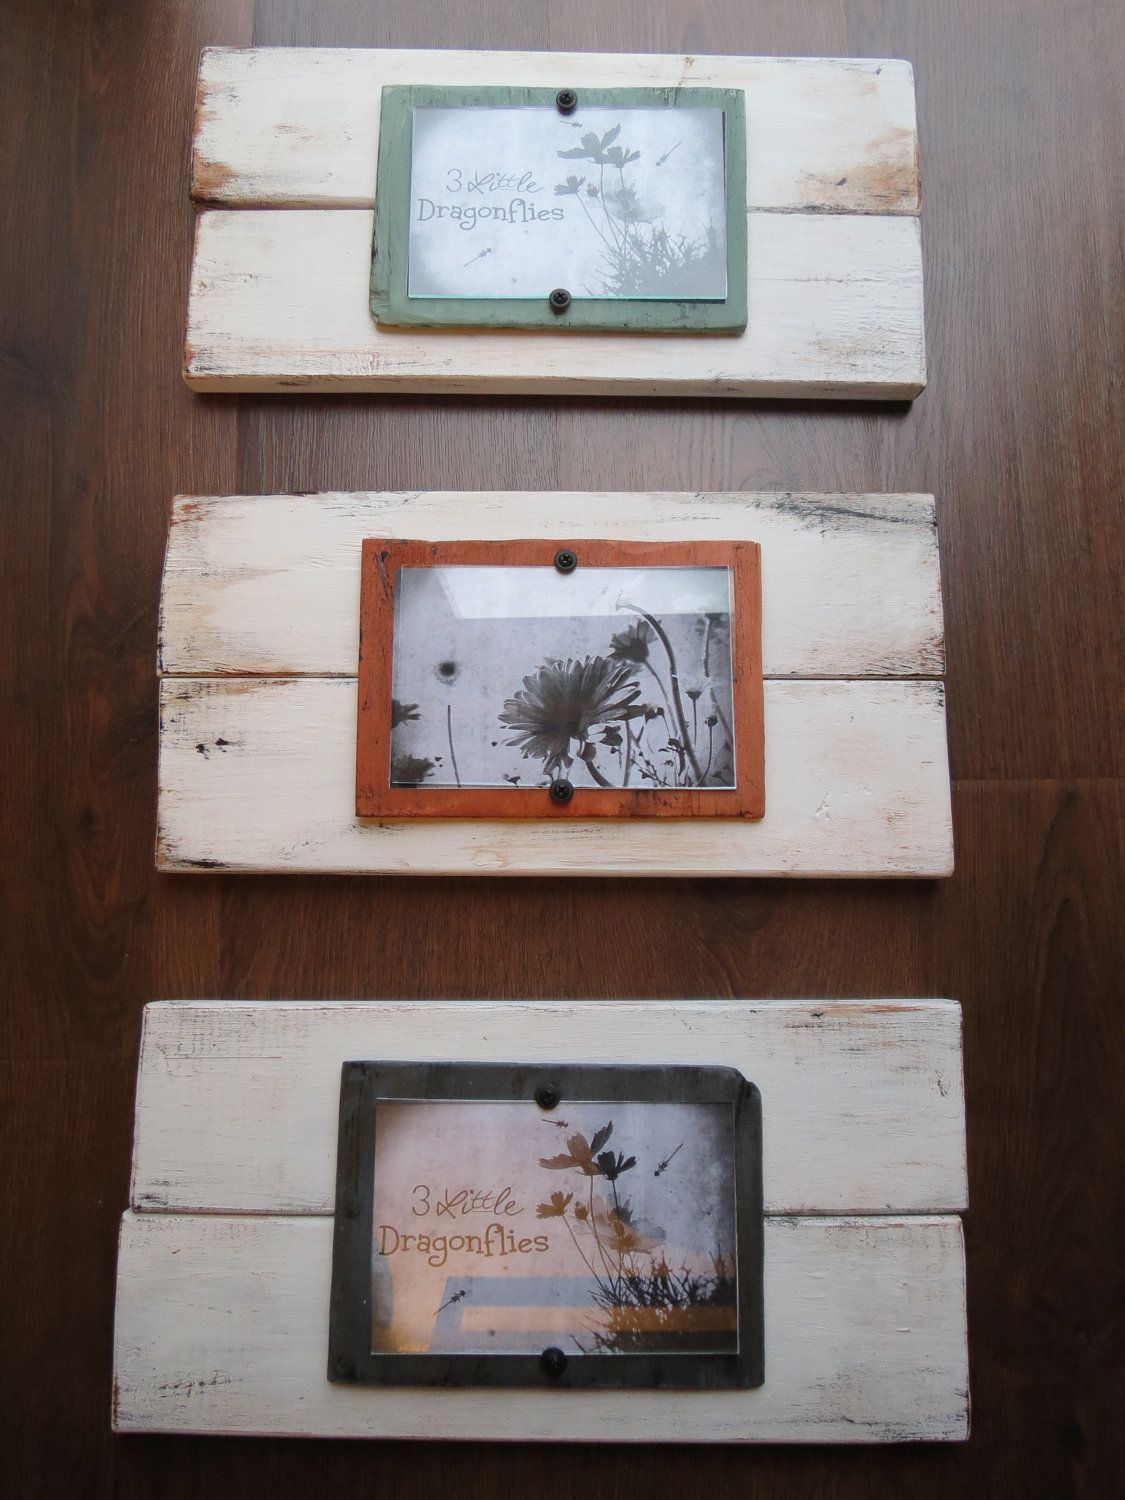 Distressed wood plank frame set of 3 for 4x6 pictures made to distressed wood plank frame set of 3 for 4x6 pictures made to order shabby cottage chic beach rustic jeuxipadfo Gallery